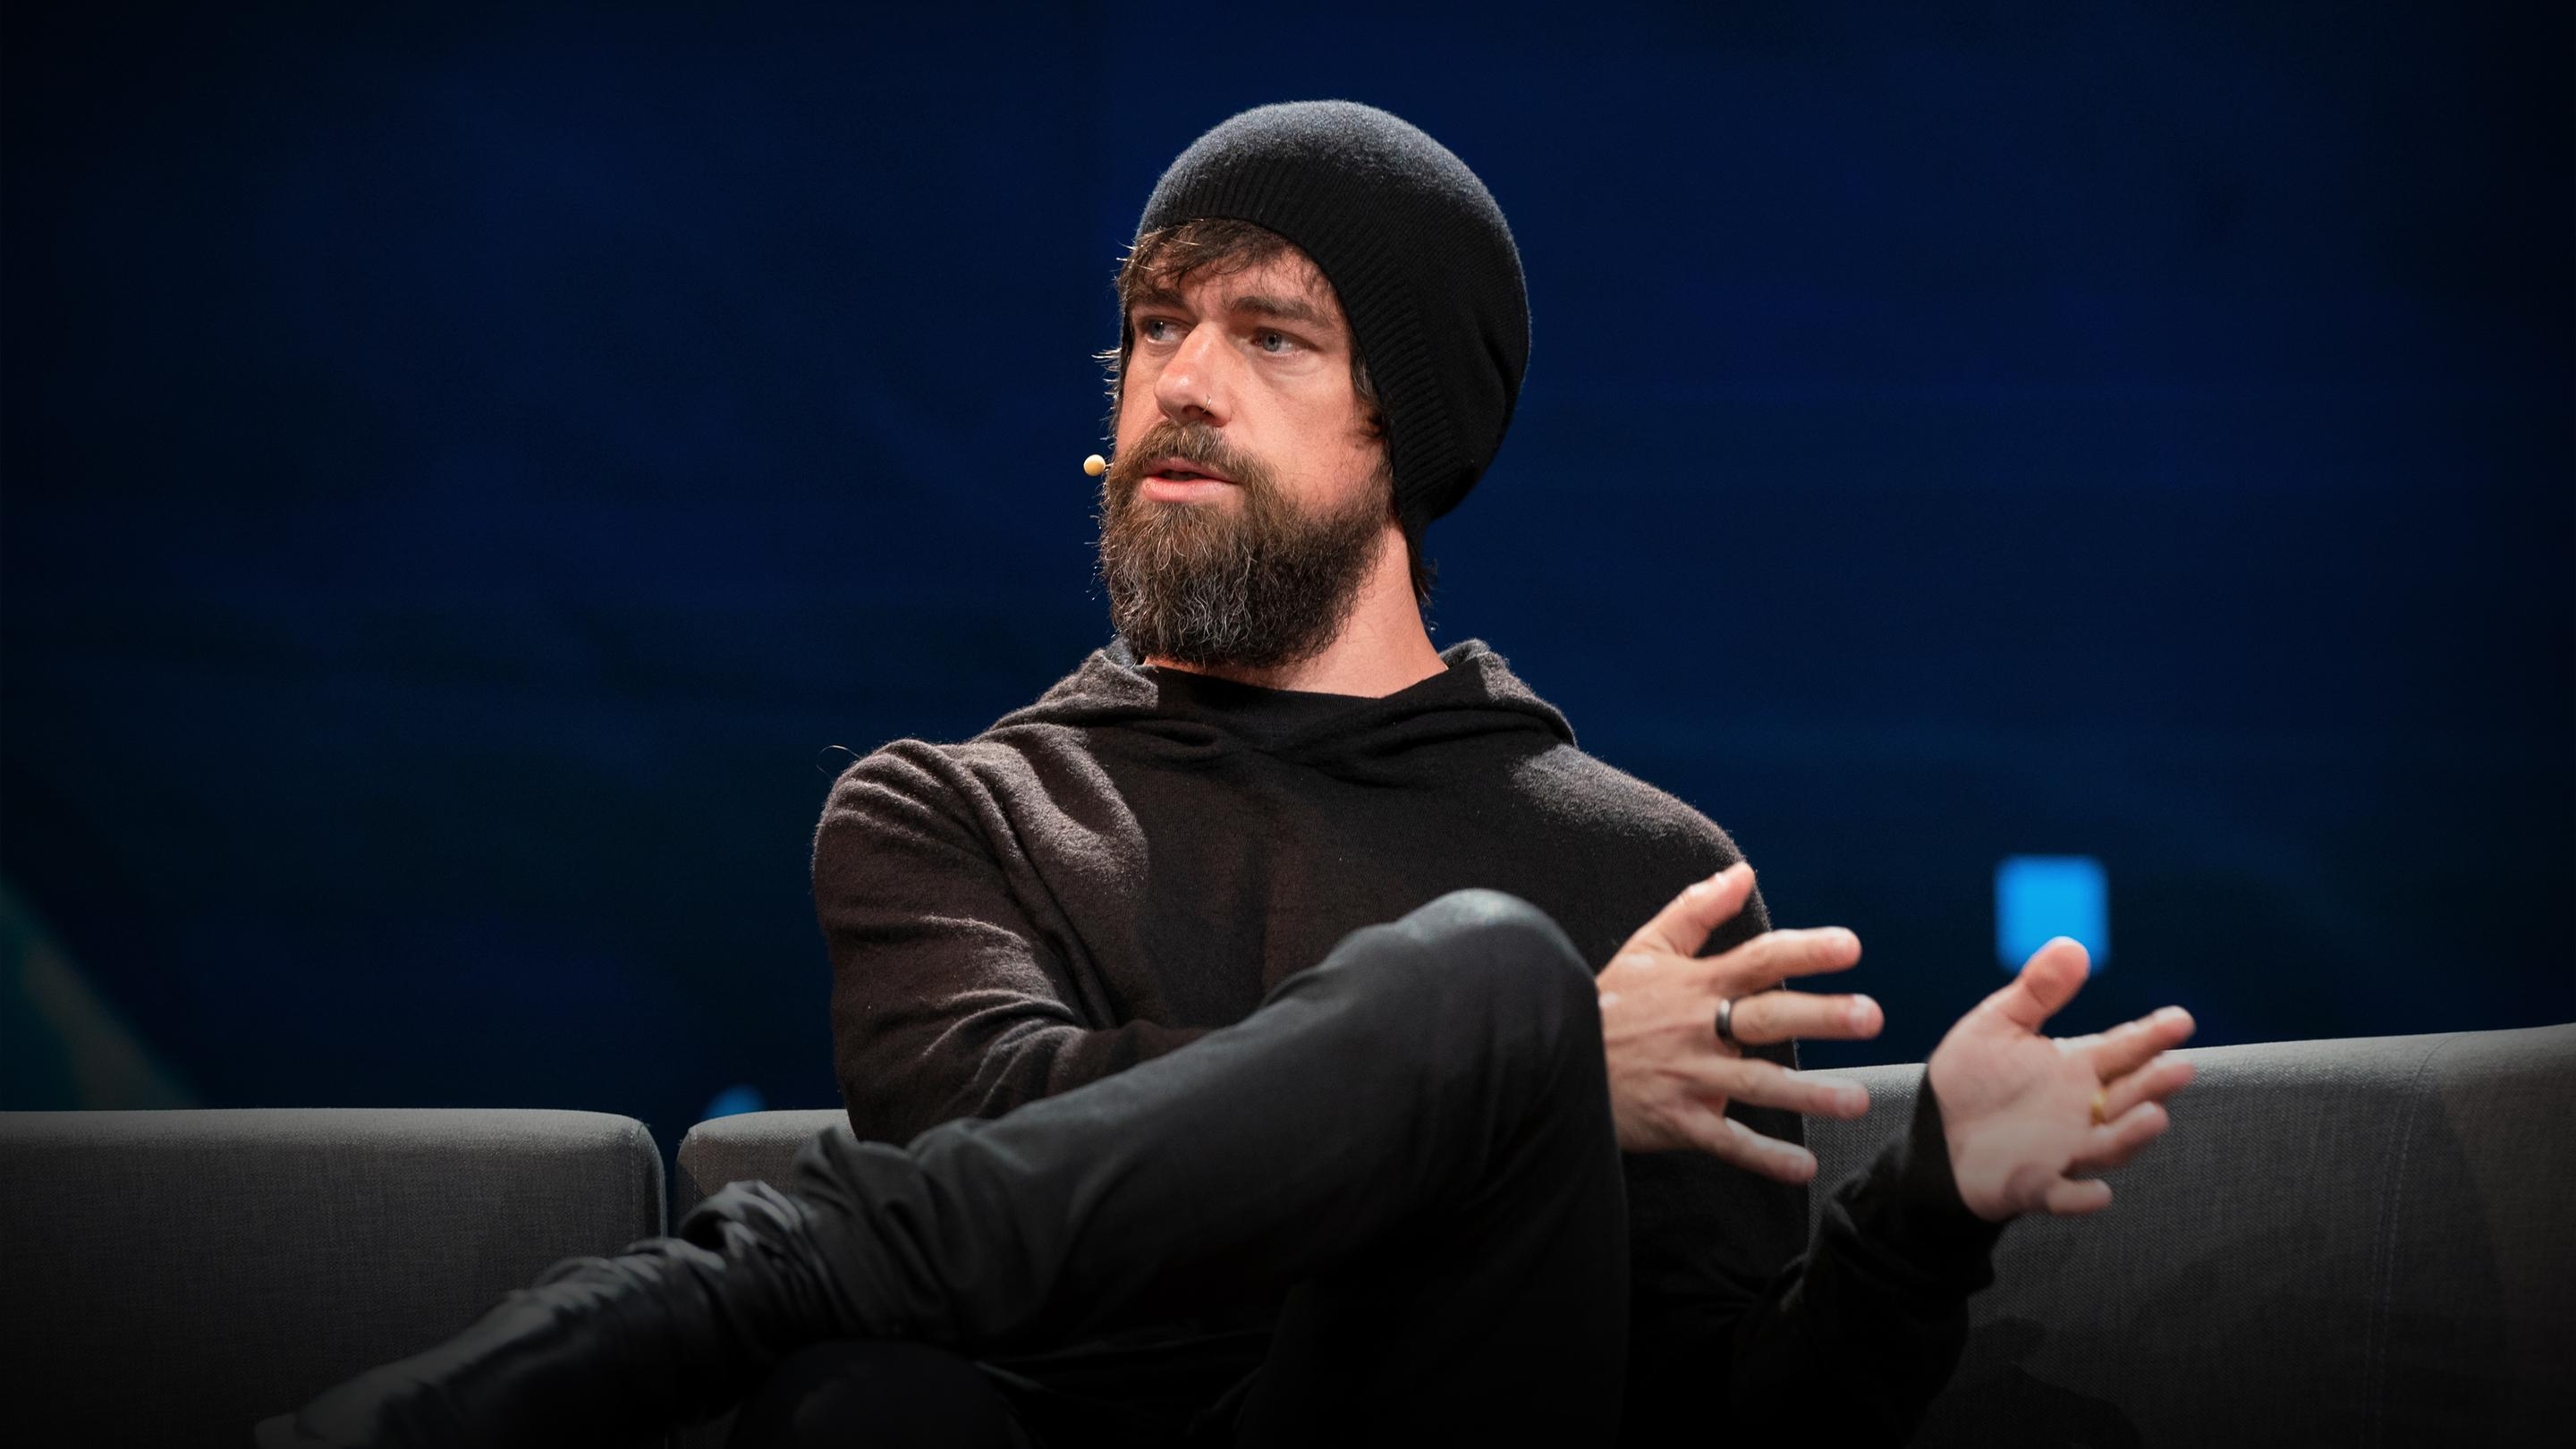 How Twitter needs to change | Jack Dorsey